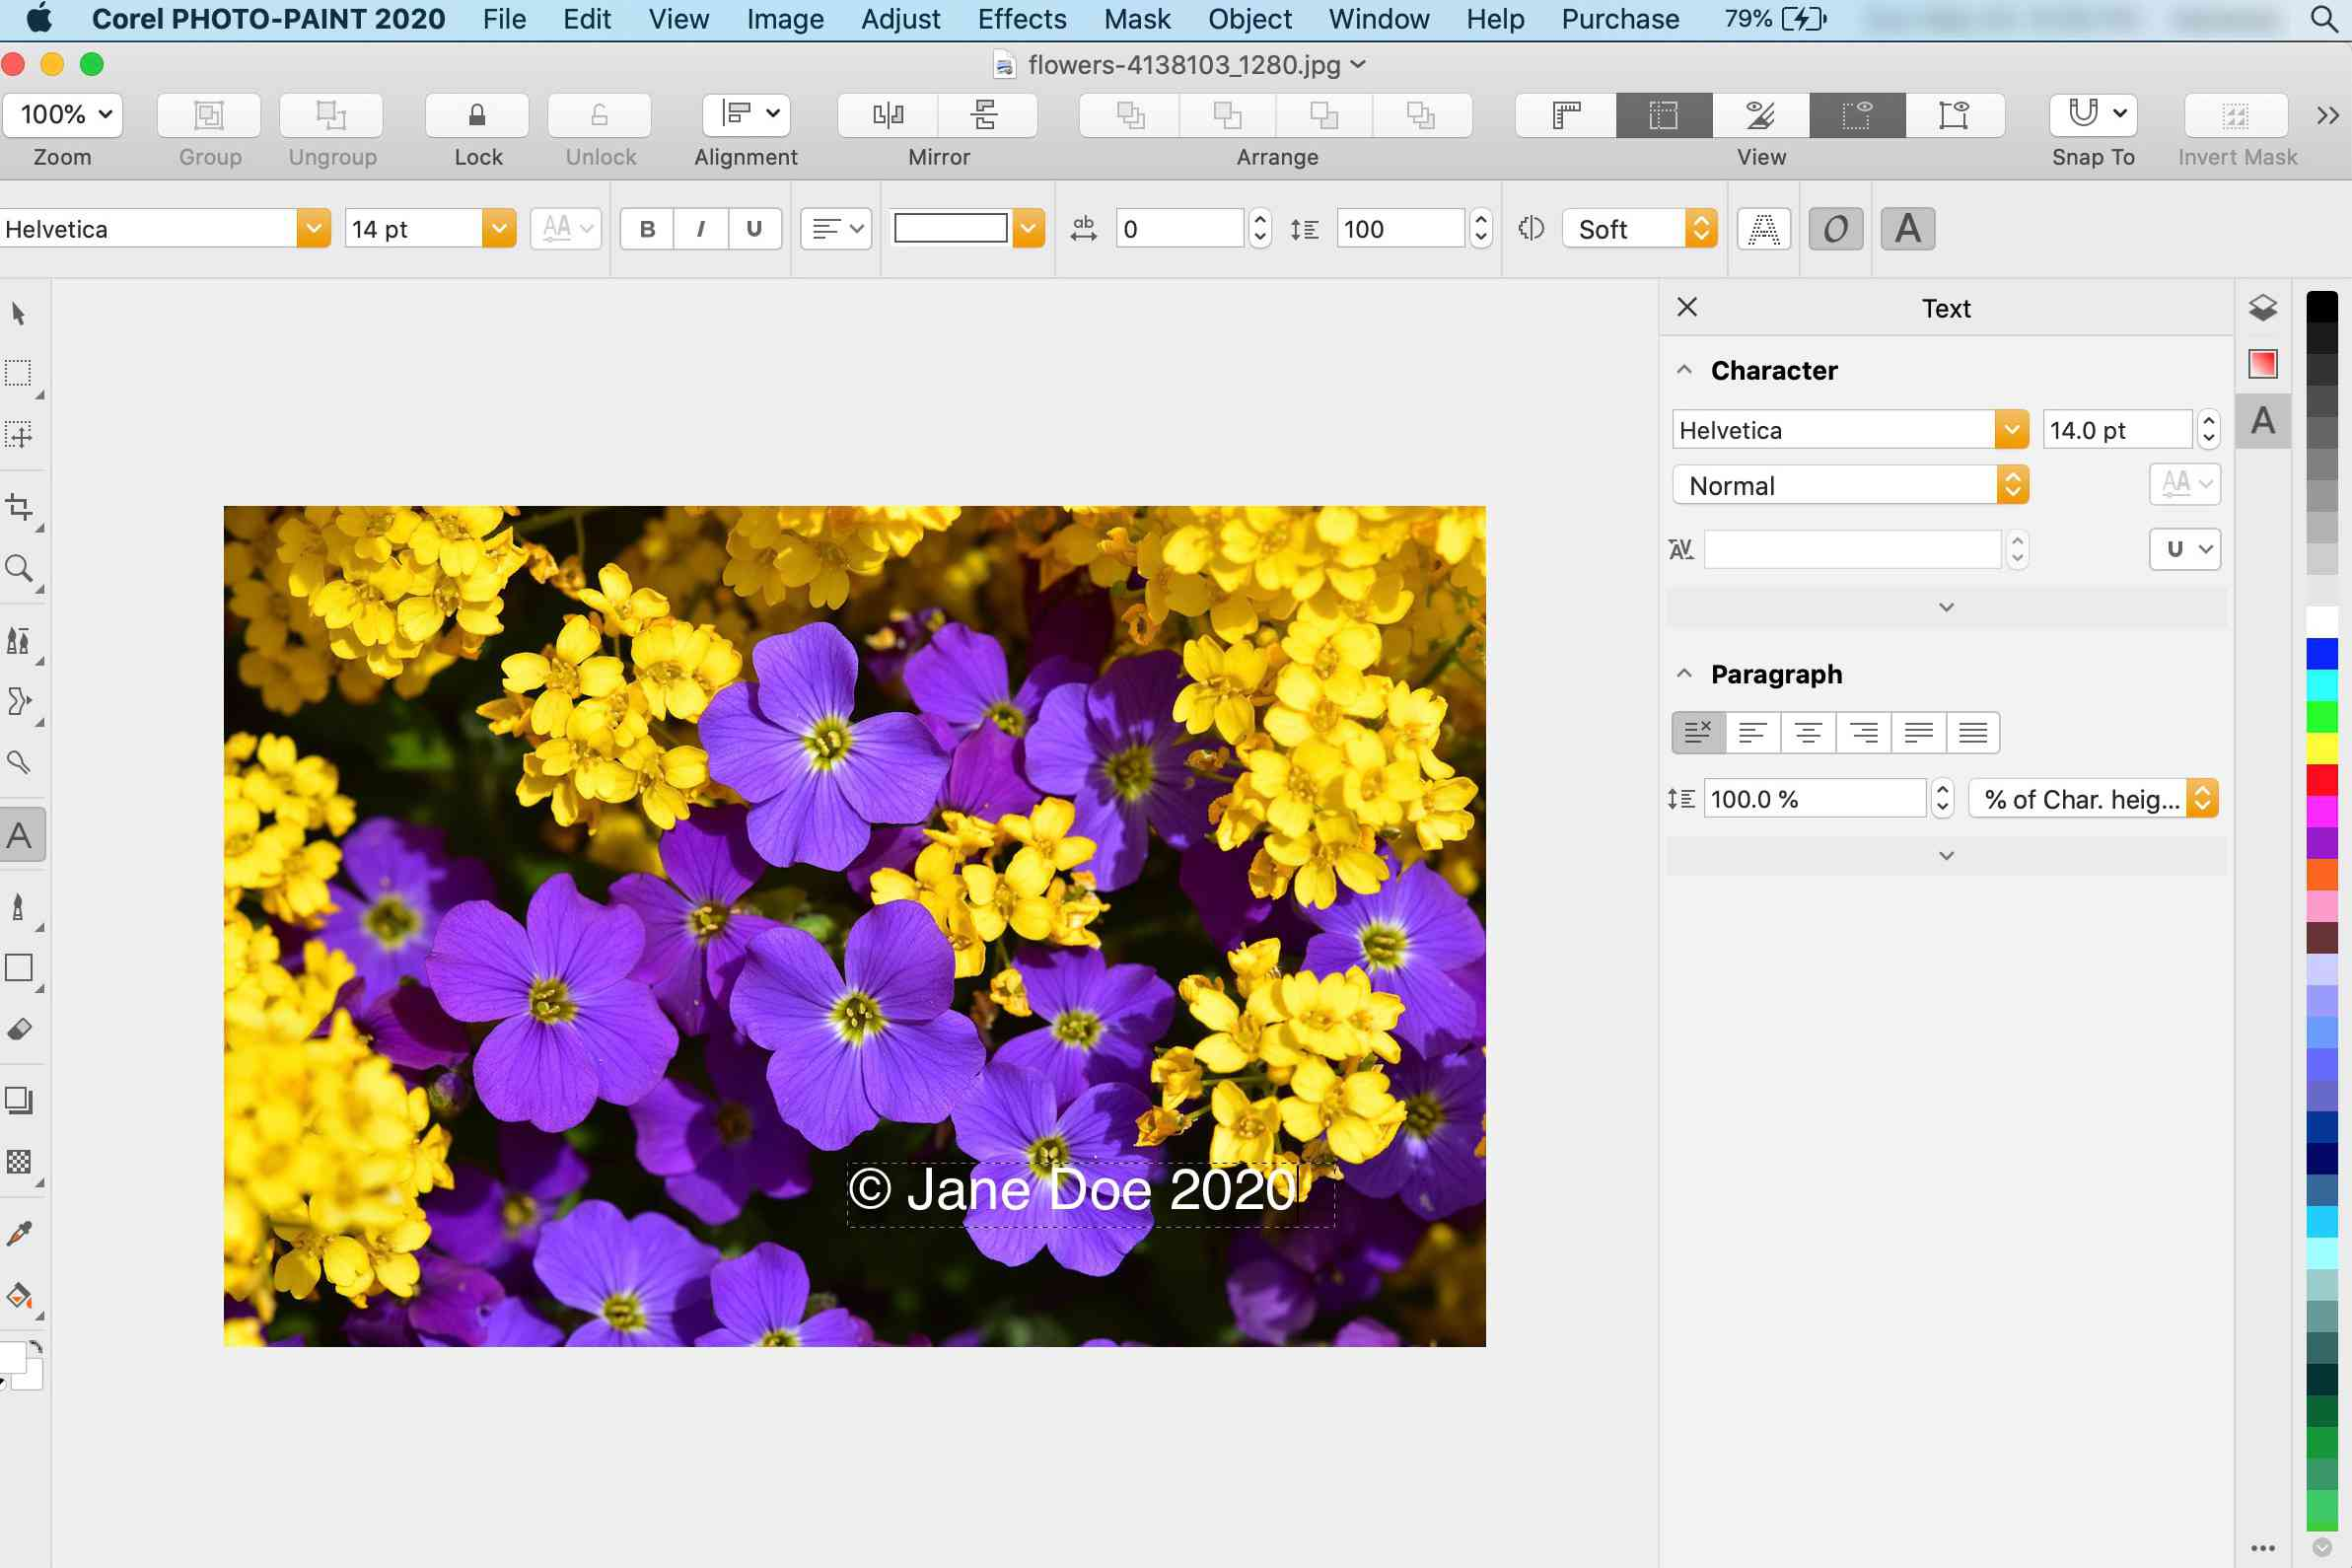 Typing the watermark text in Corel Photo-Paint